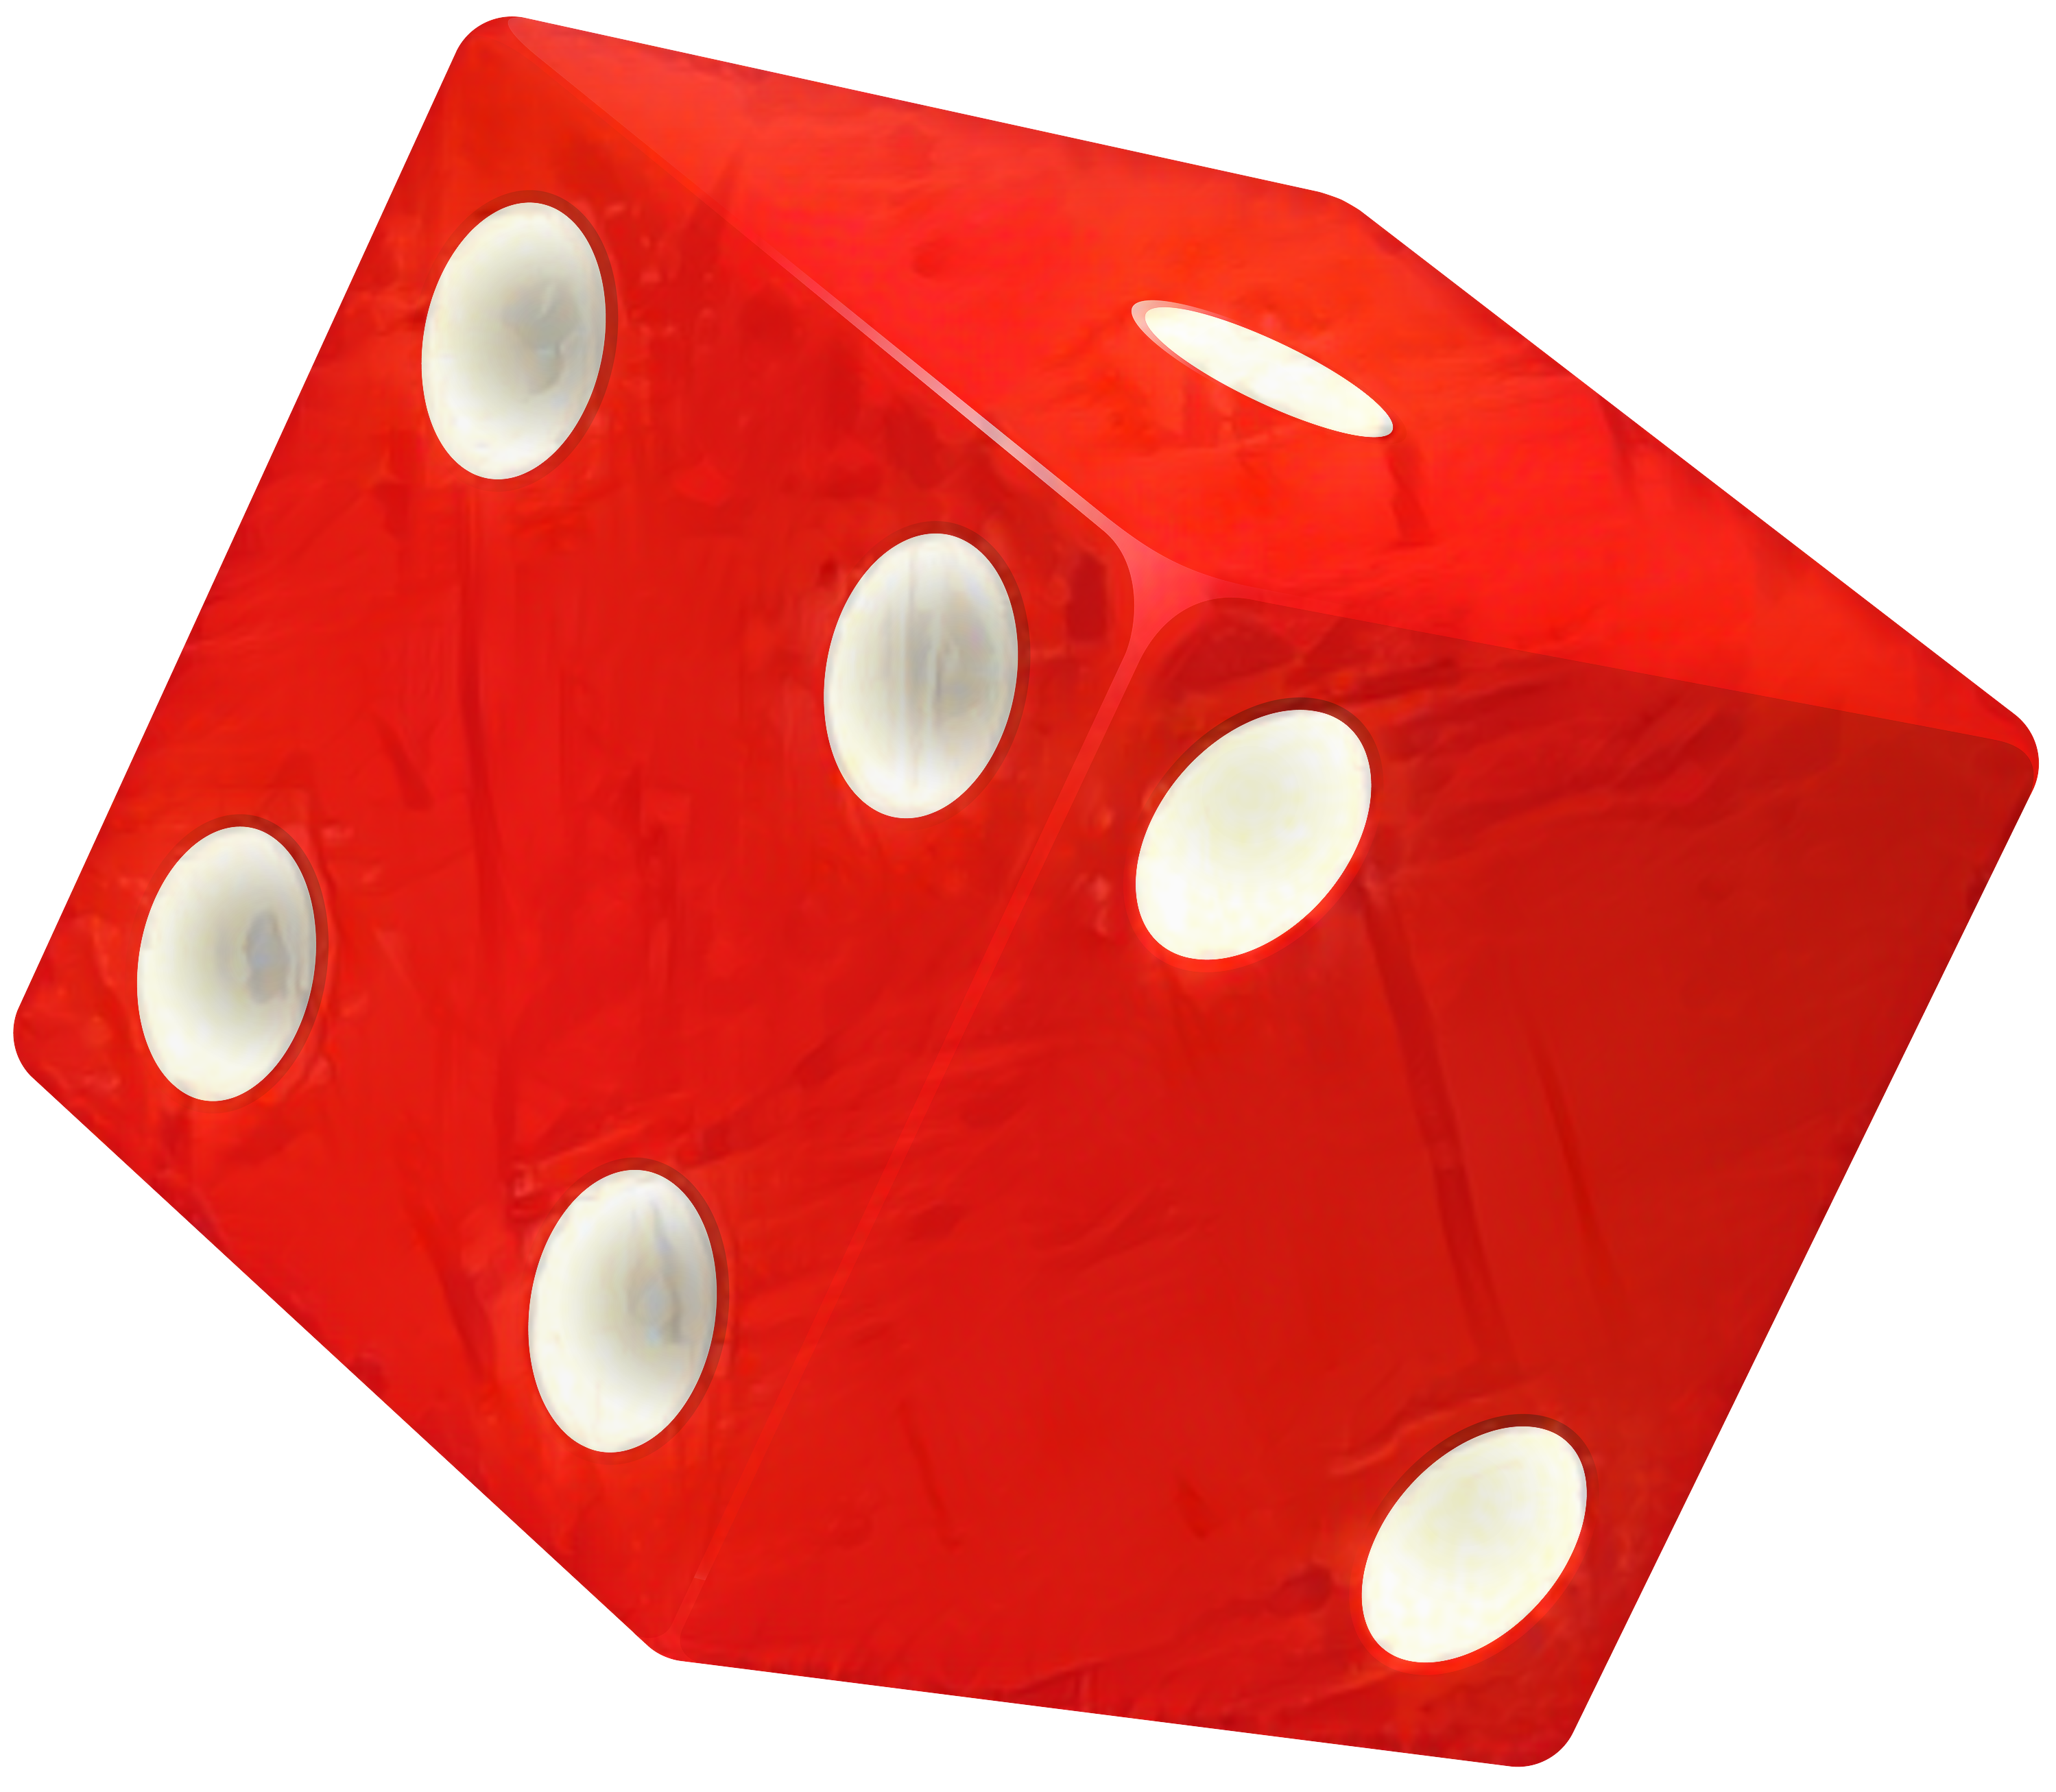 Clip art Portable Network Graphics Dice Game Transparency.